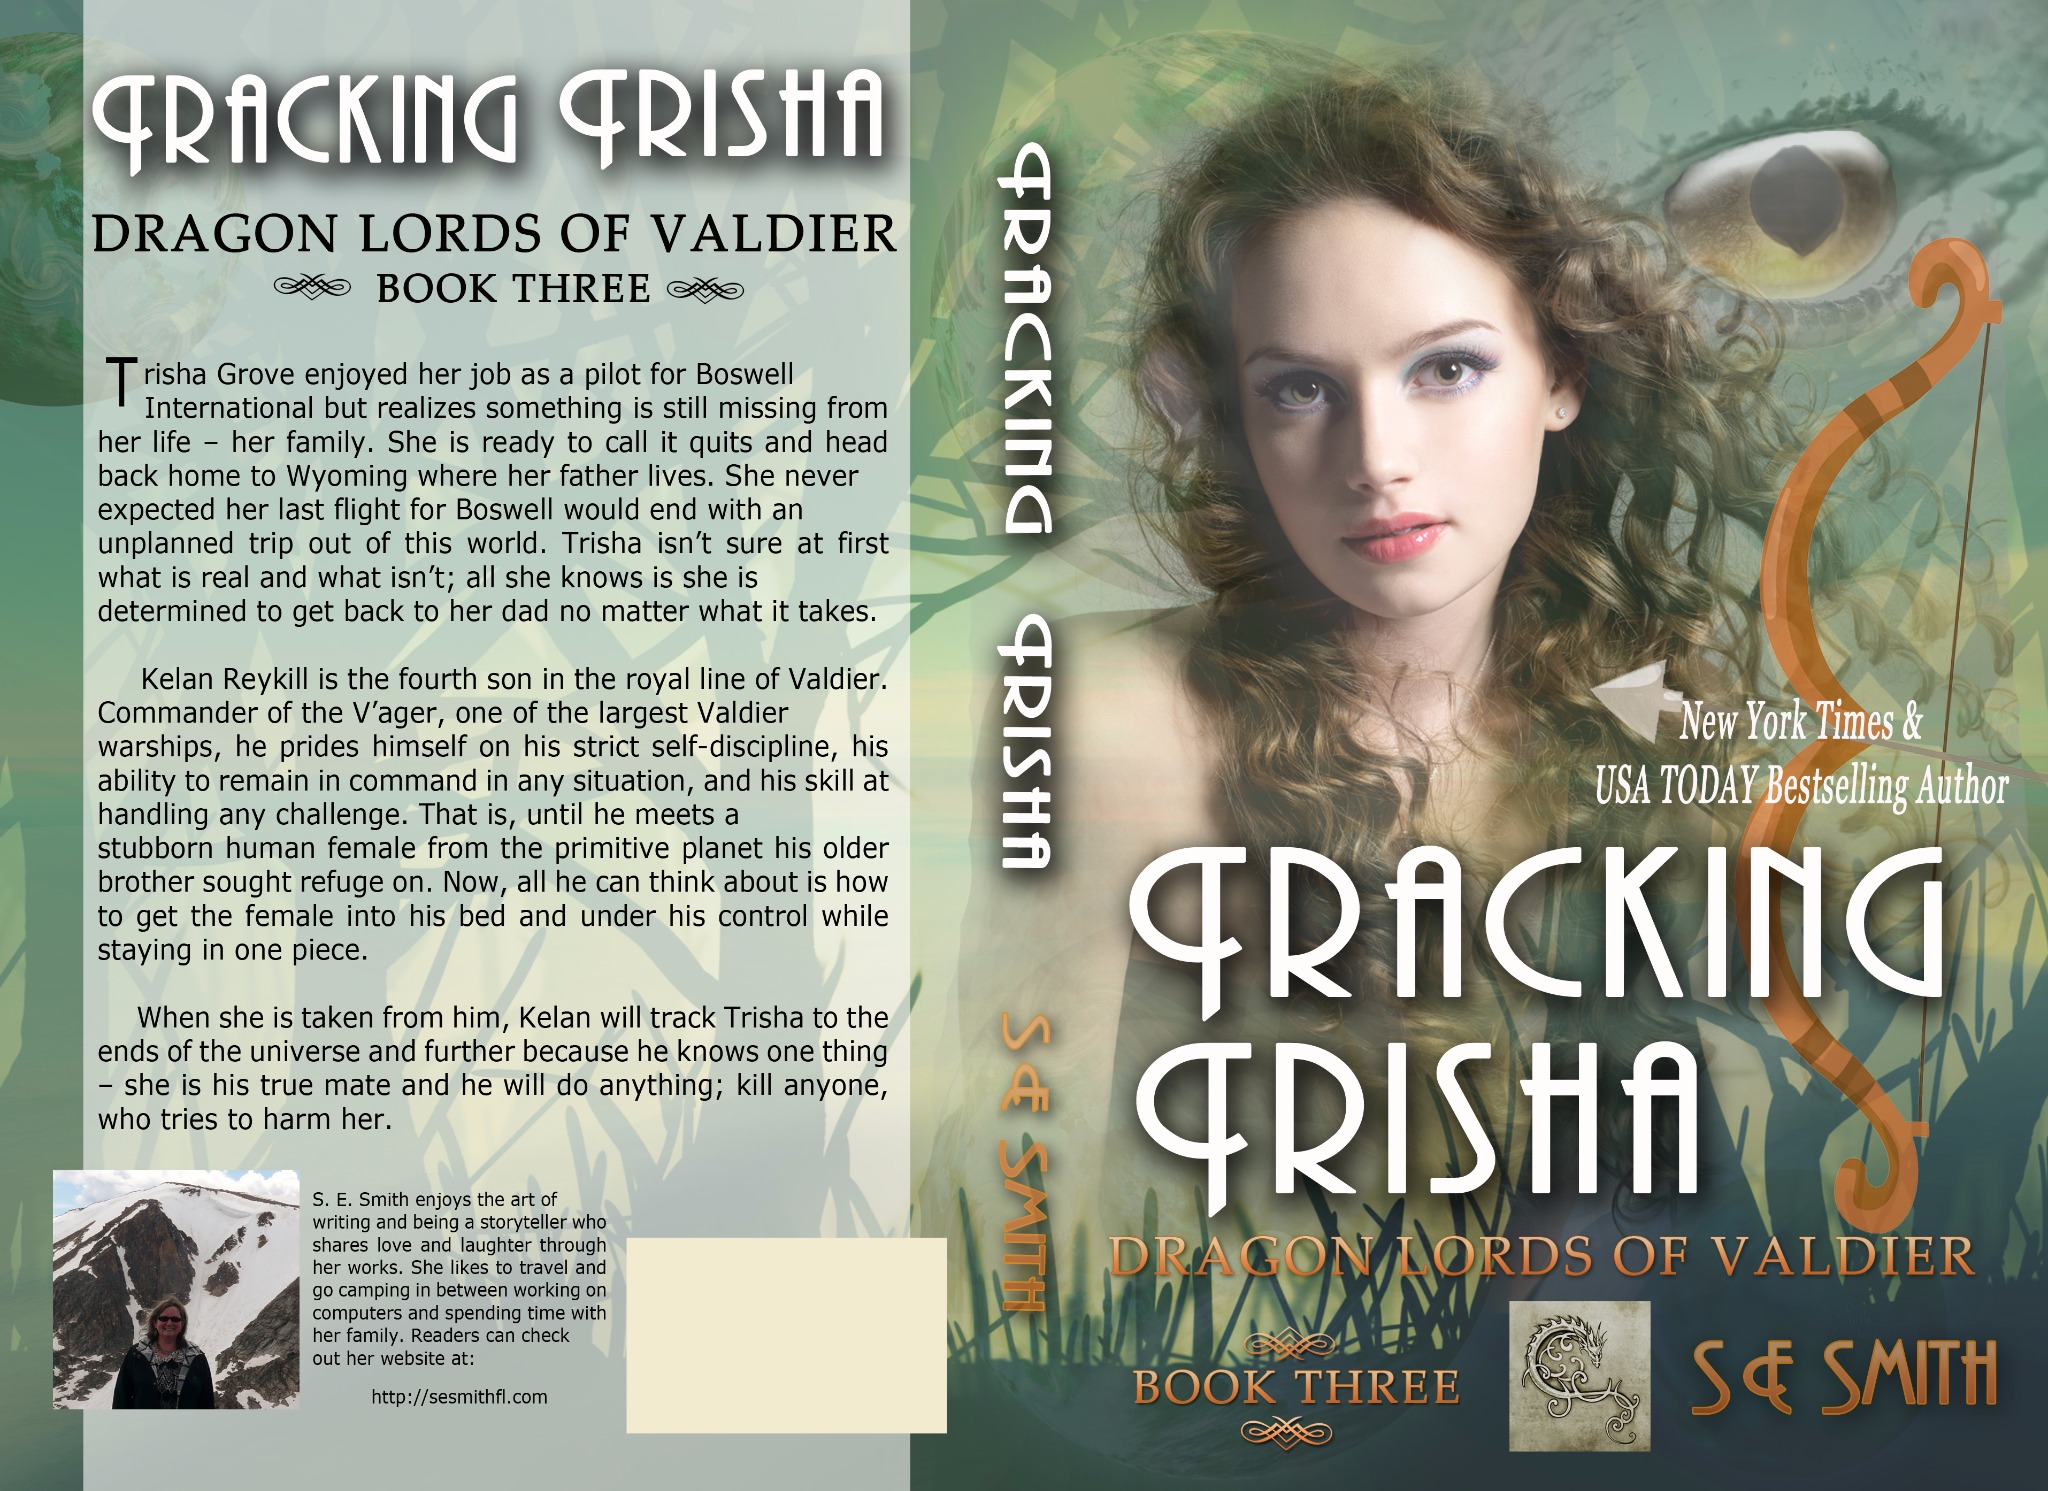 Tracking Trisha: Dragon Lords of Valdier Book 3 (Paperback)